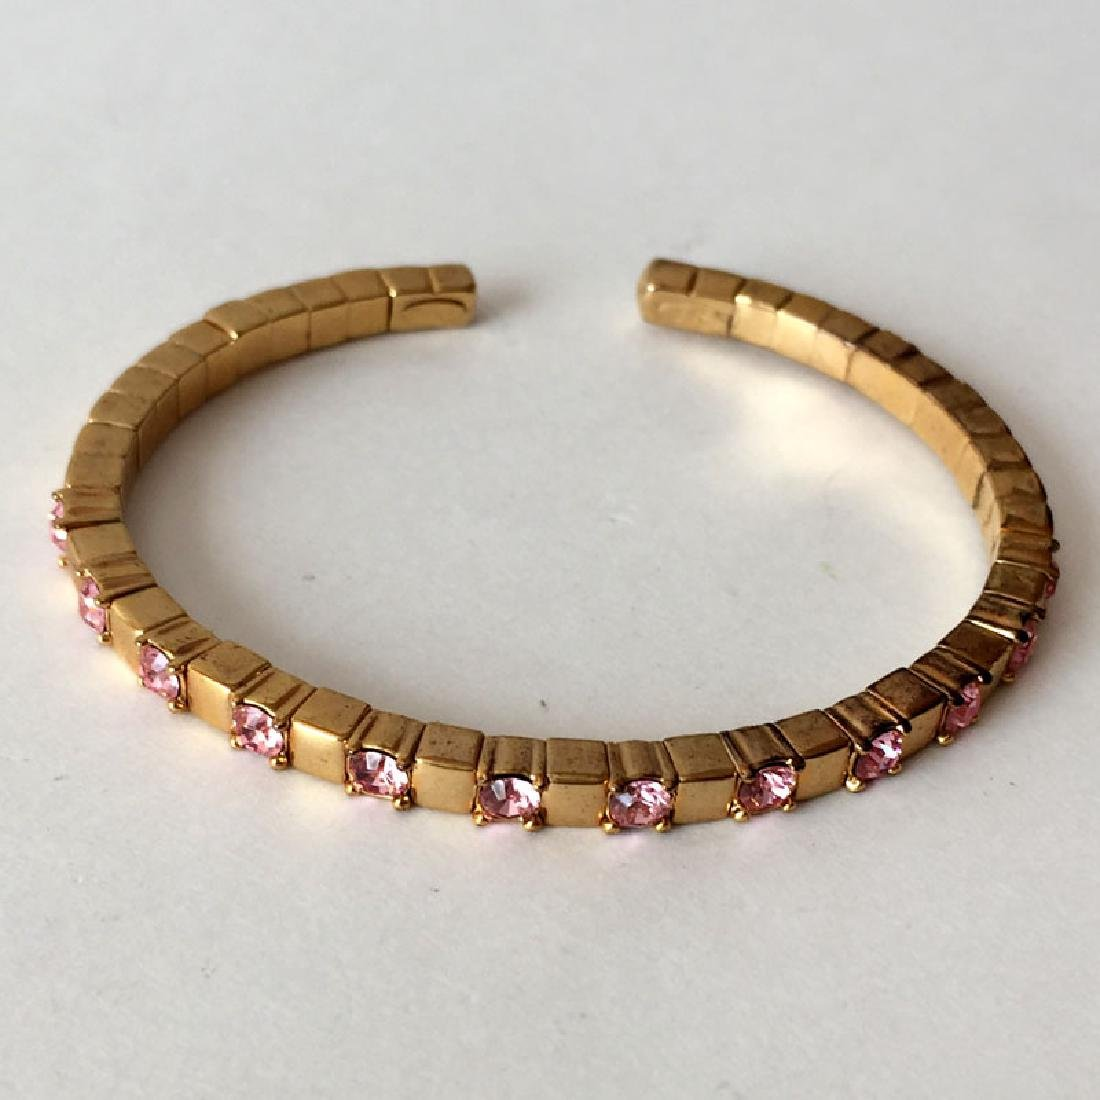 JR CHINA: Gold plated cuff flexible bracelet with pink